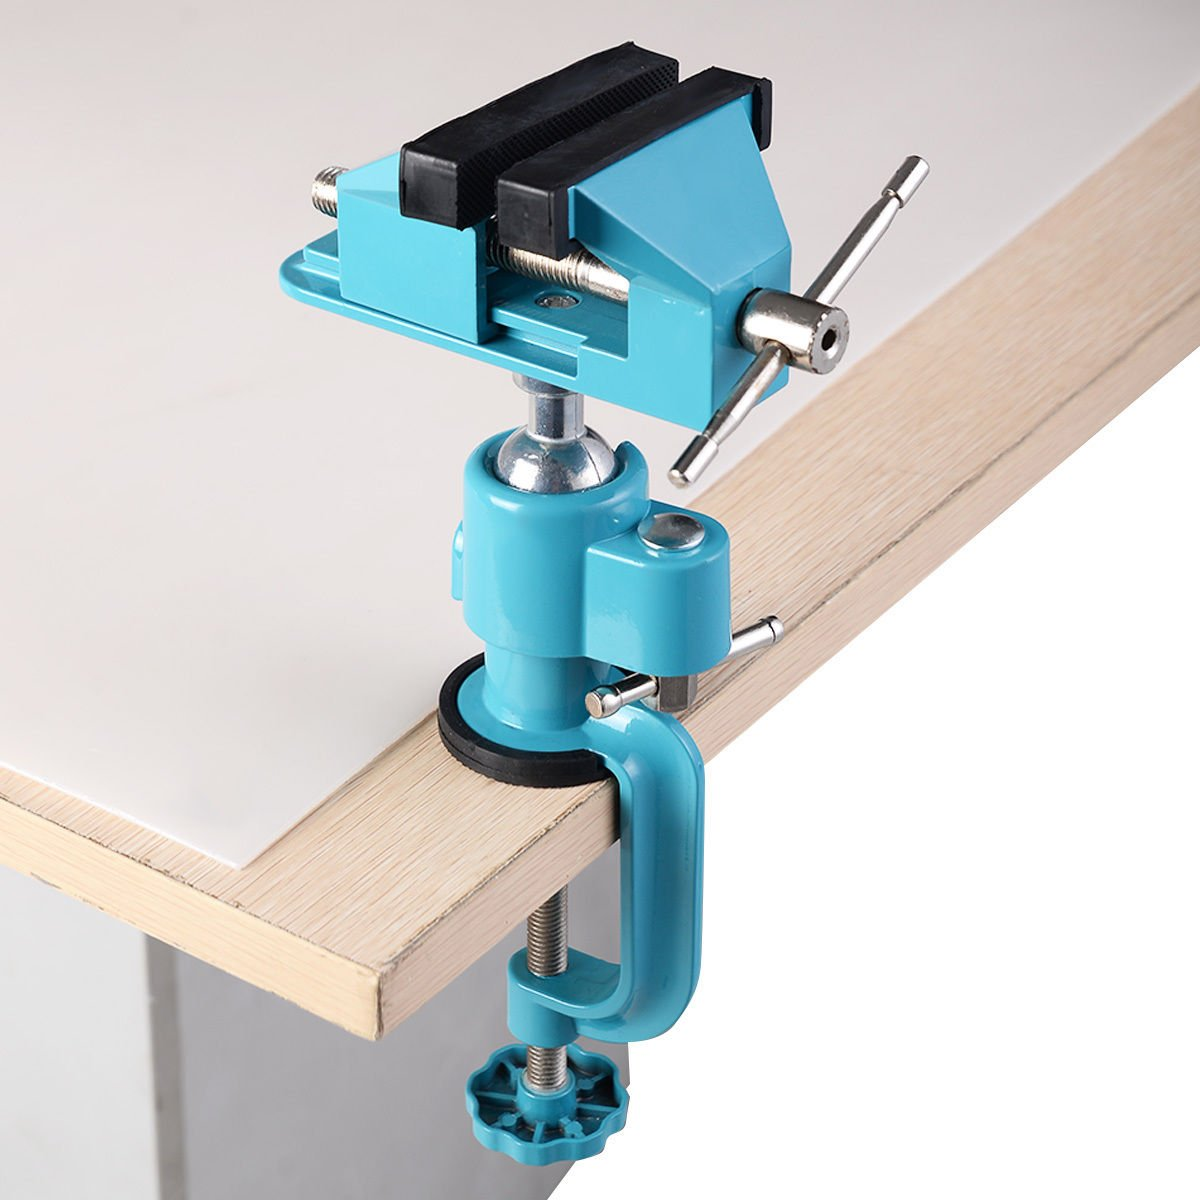 Work Bench Tool Vise Swivel w/Clamp 3'' Tabletop Vises Tilt Rotates 360°